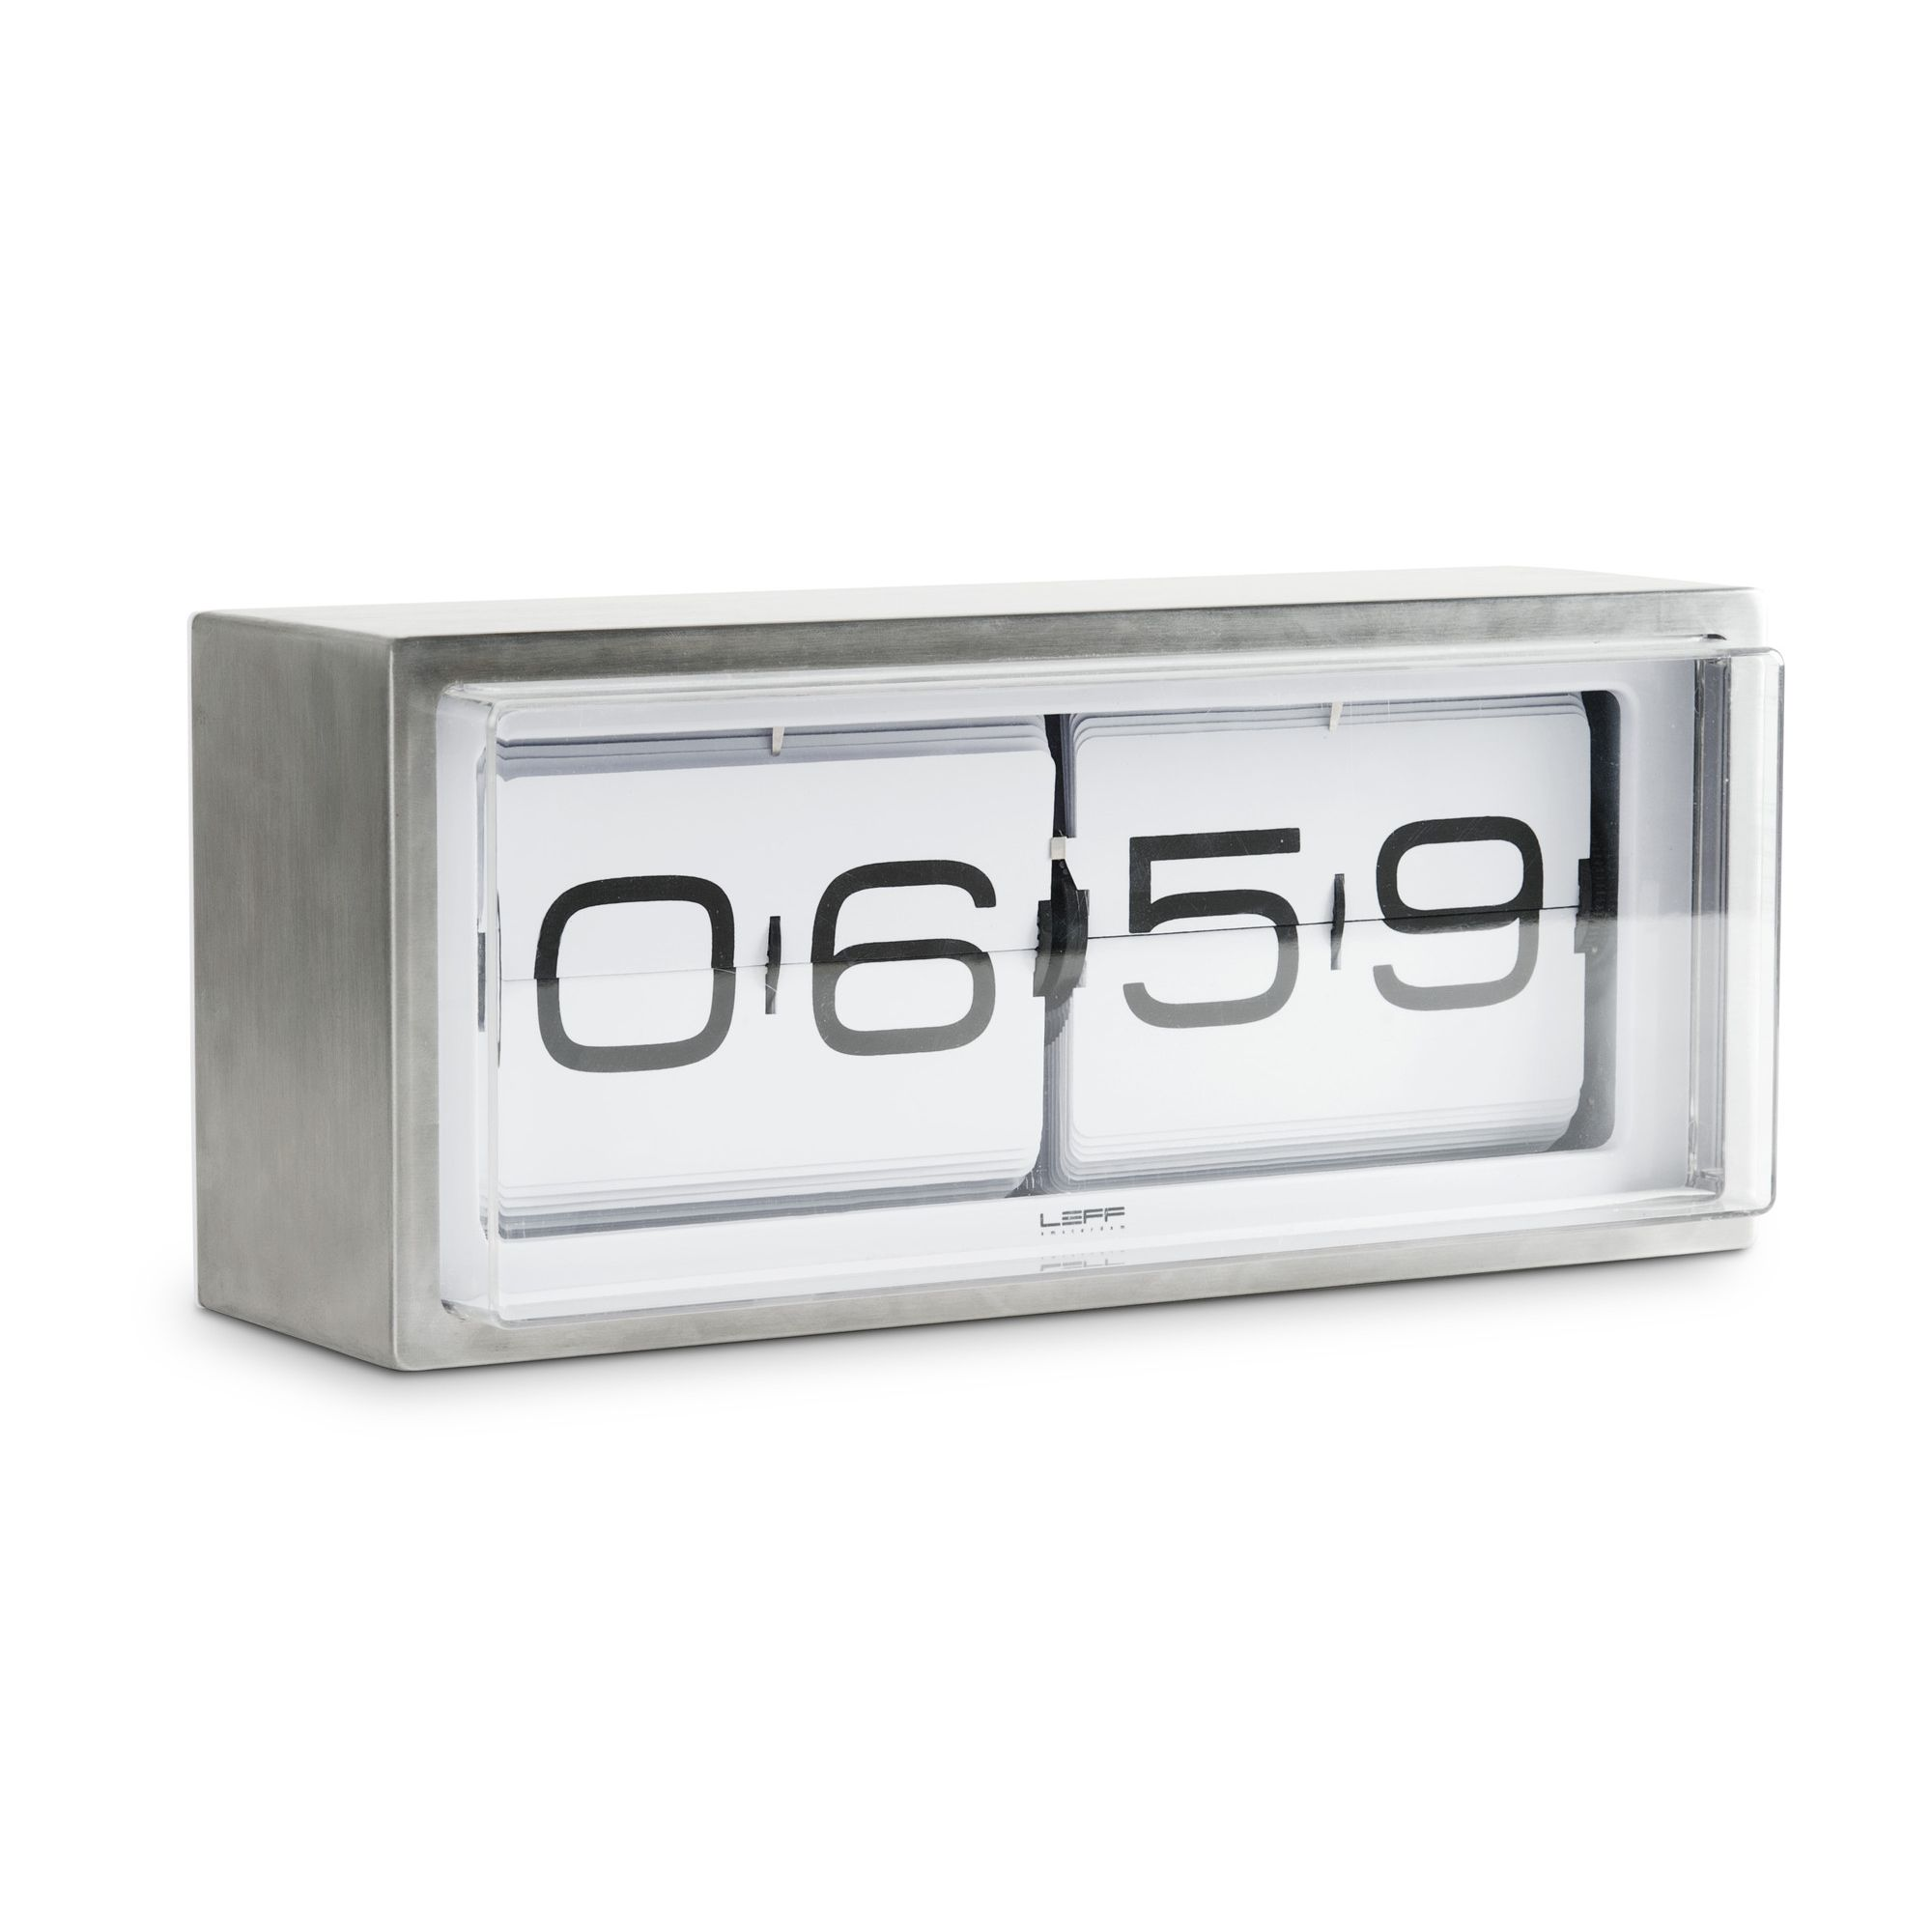 Leff Brick Wall/Desk Clock with Black Dial in Stainless Steel - 24Hr at Tesco Direct